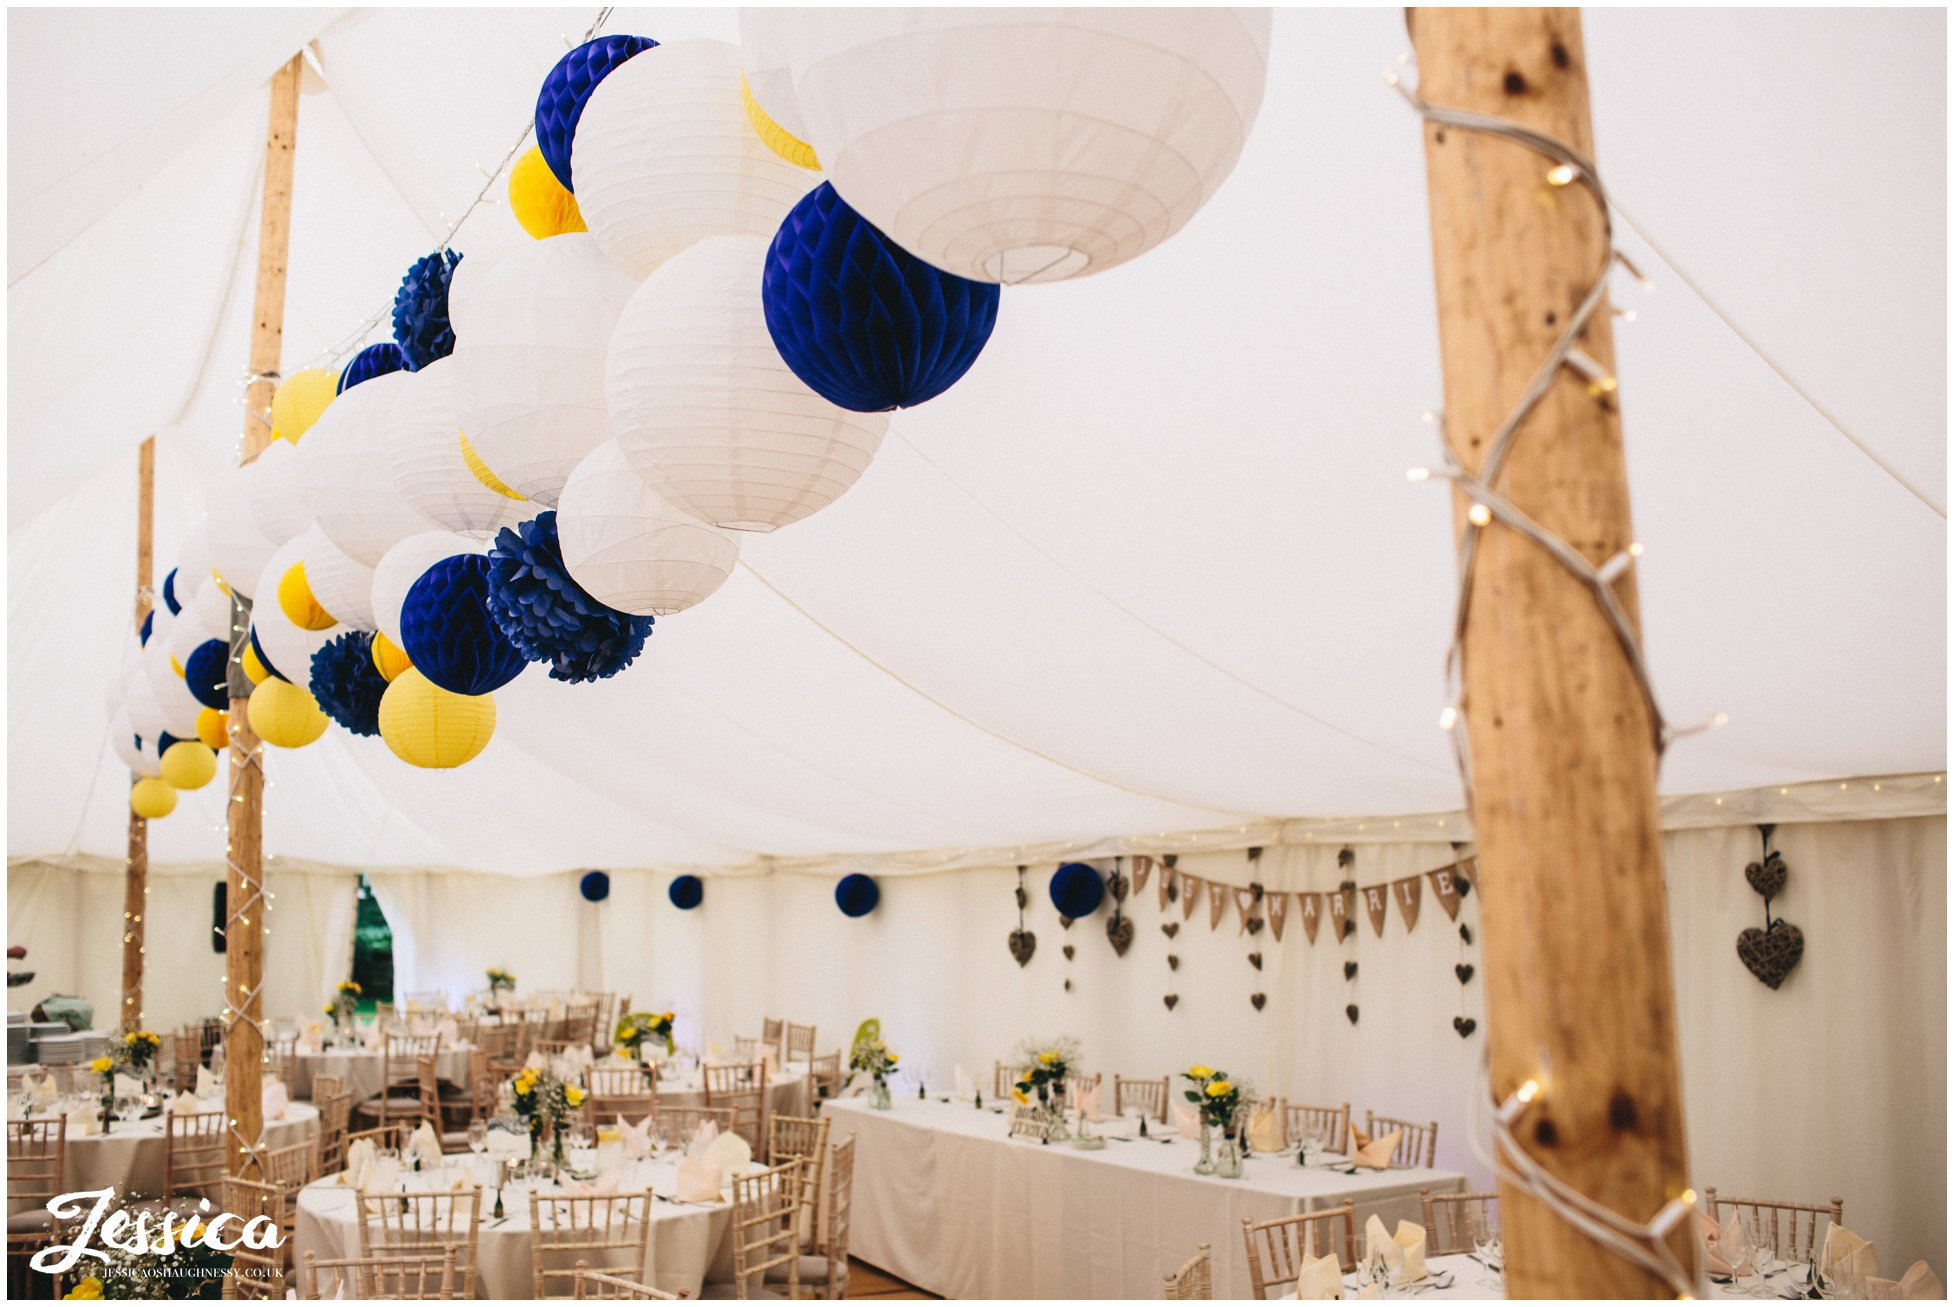 blue & yellow lanterns decorate the marquee at a wedding in trafford hall, chester